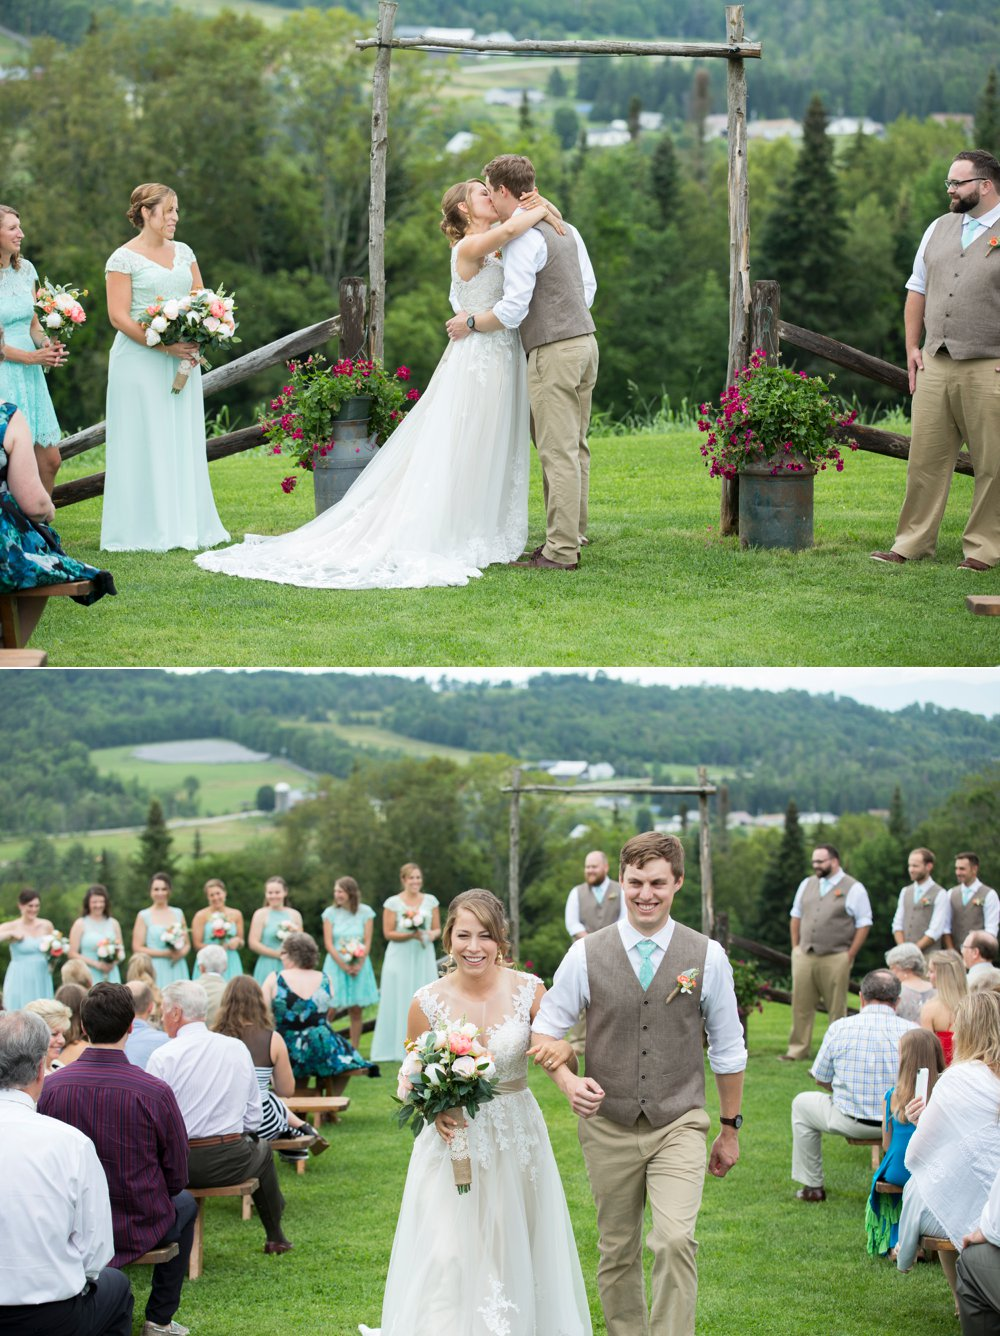 SomerbyJonesPhotography_VermontWedding_CyrBarn_CryBarnWedding_0029.jpg